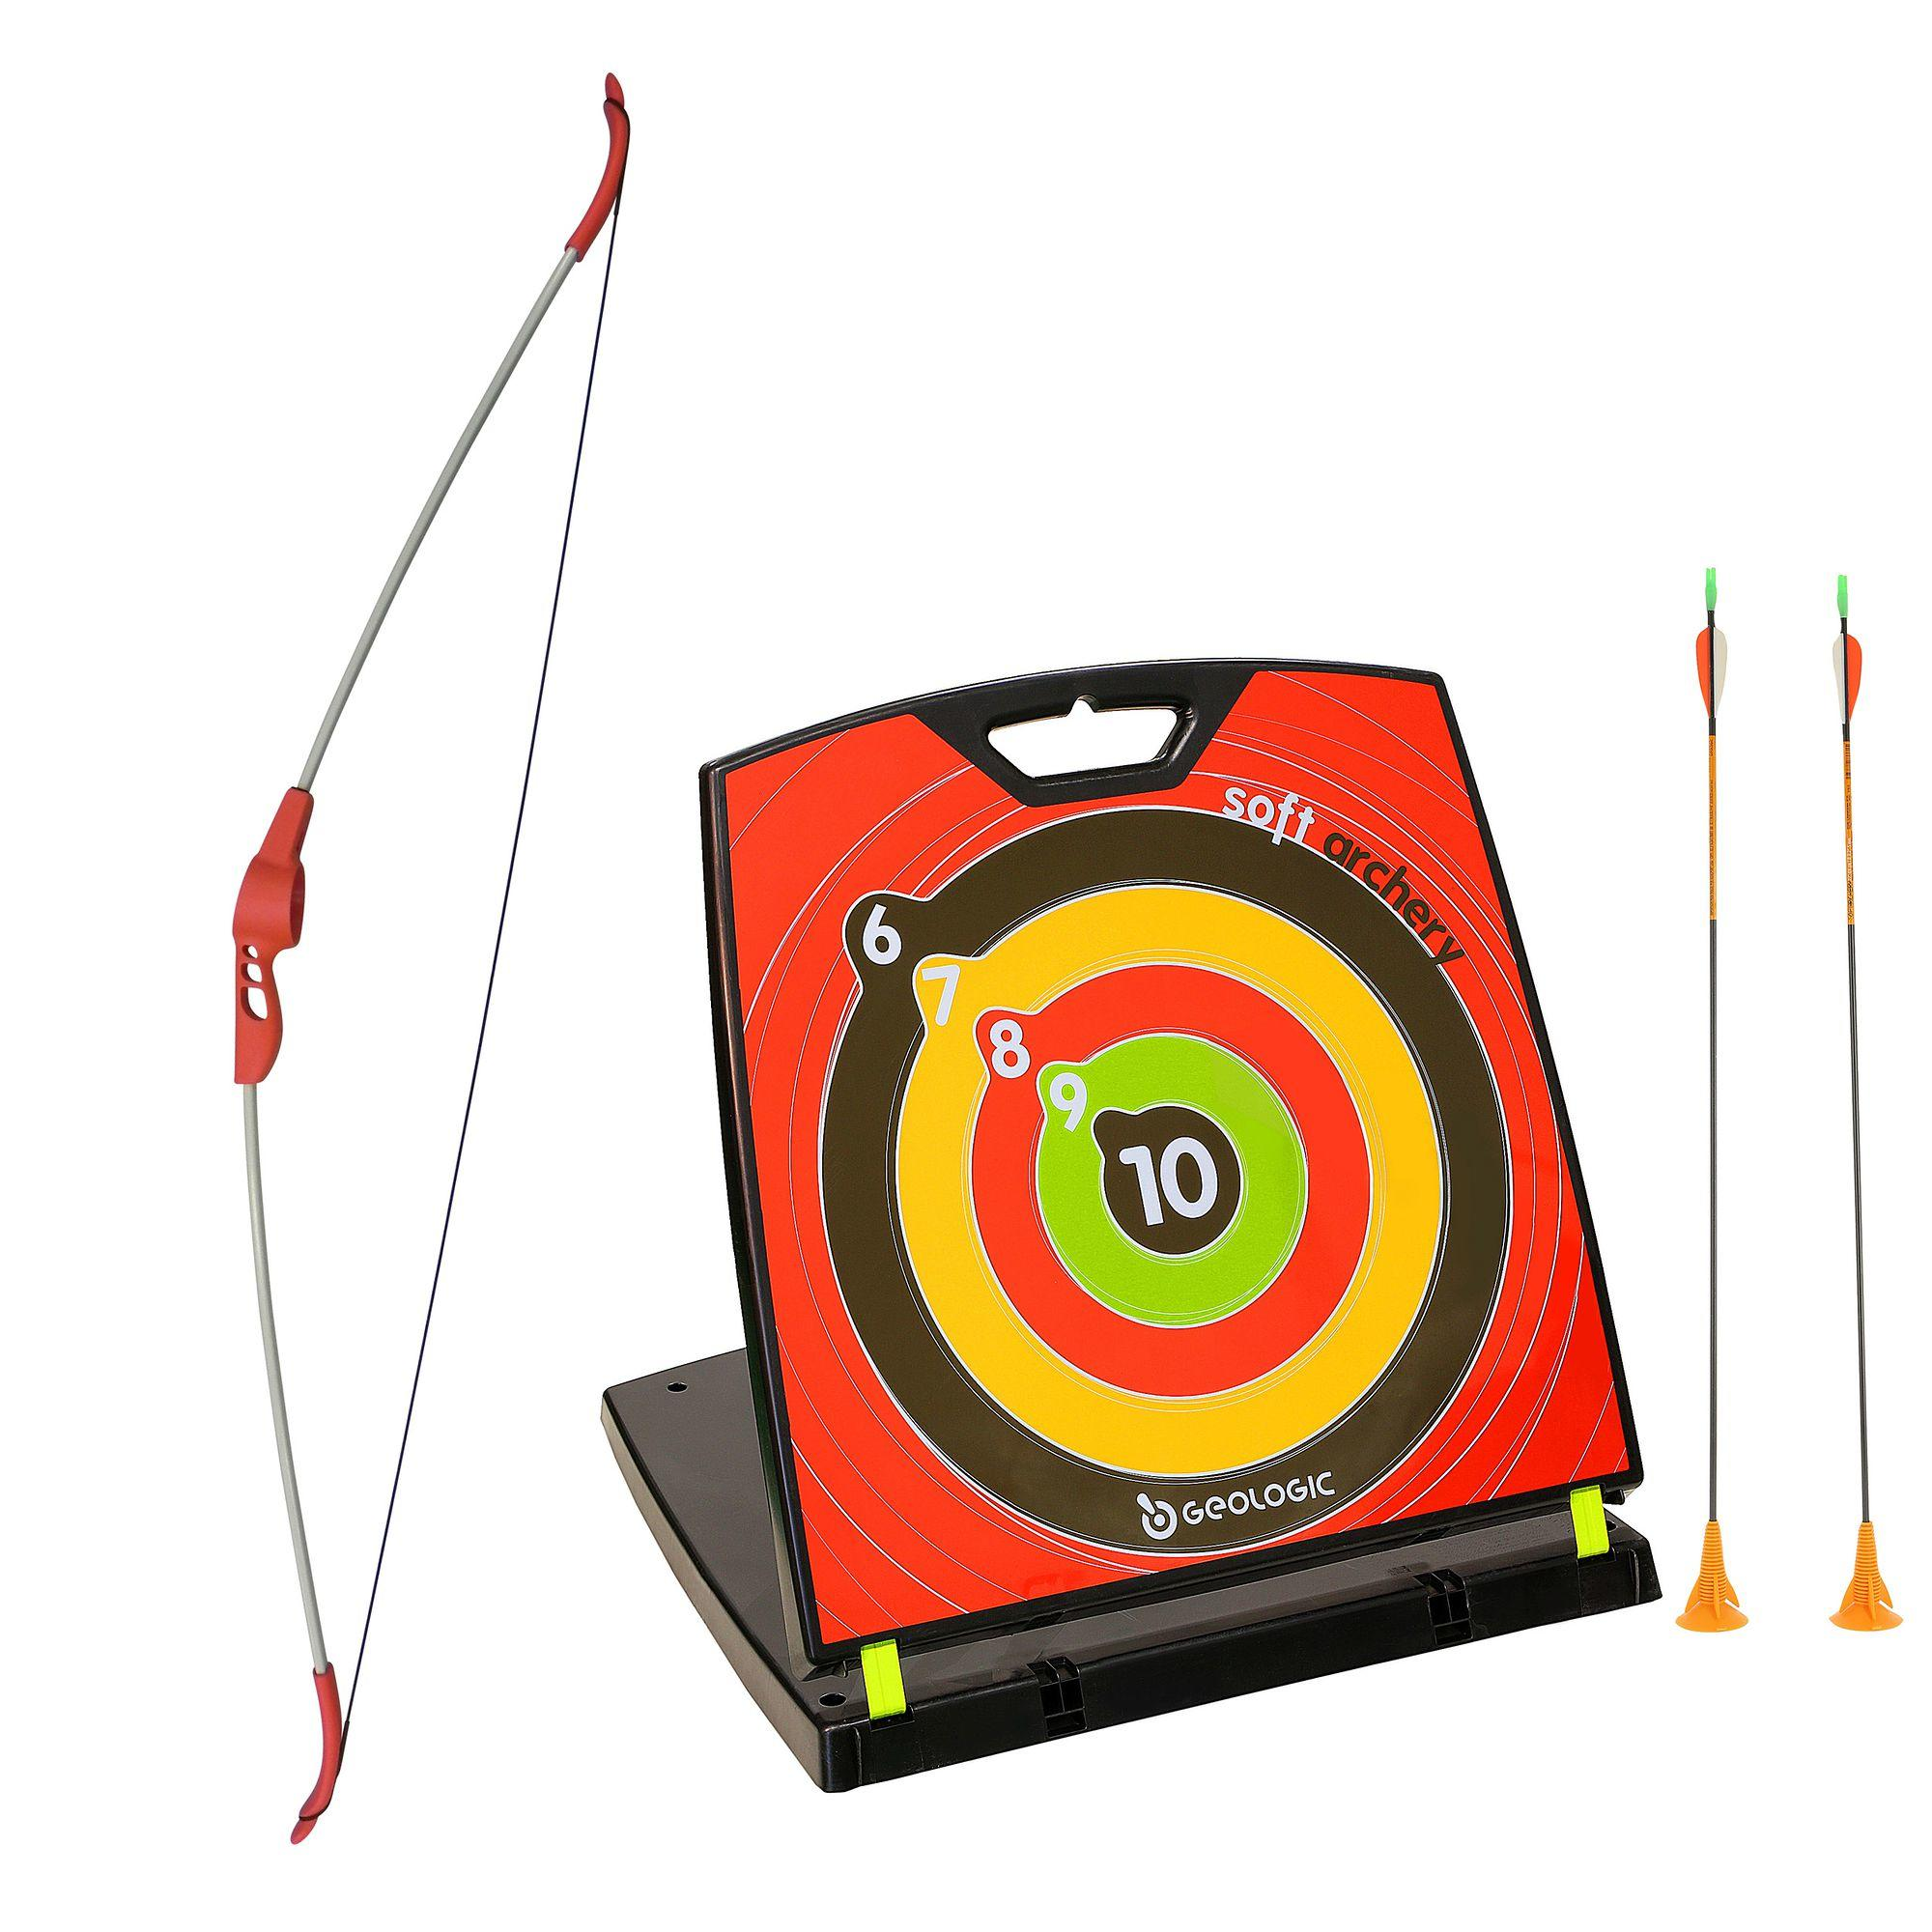 SOFTARCHERY ARCHERY SET 2